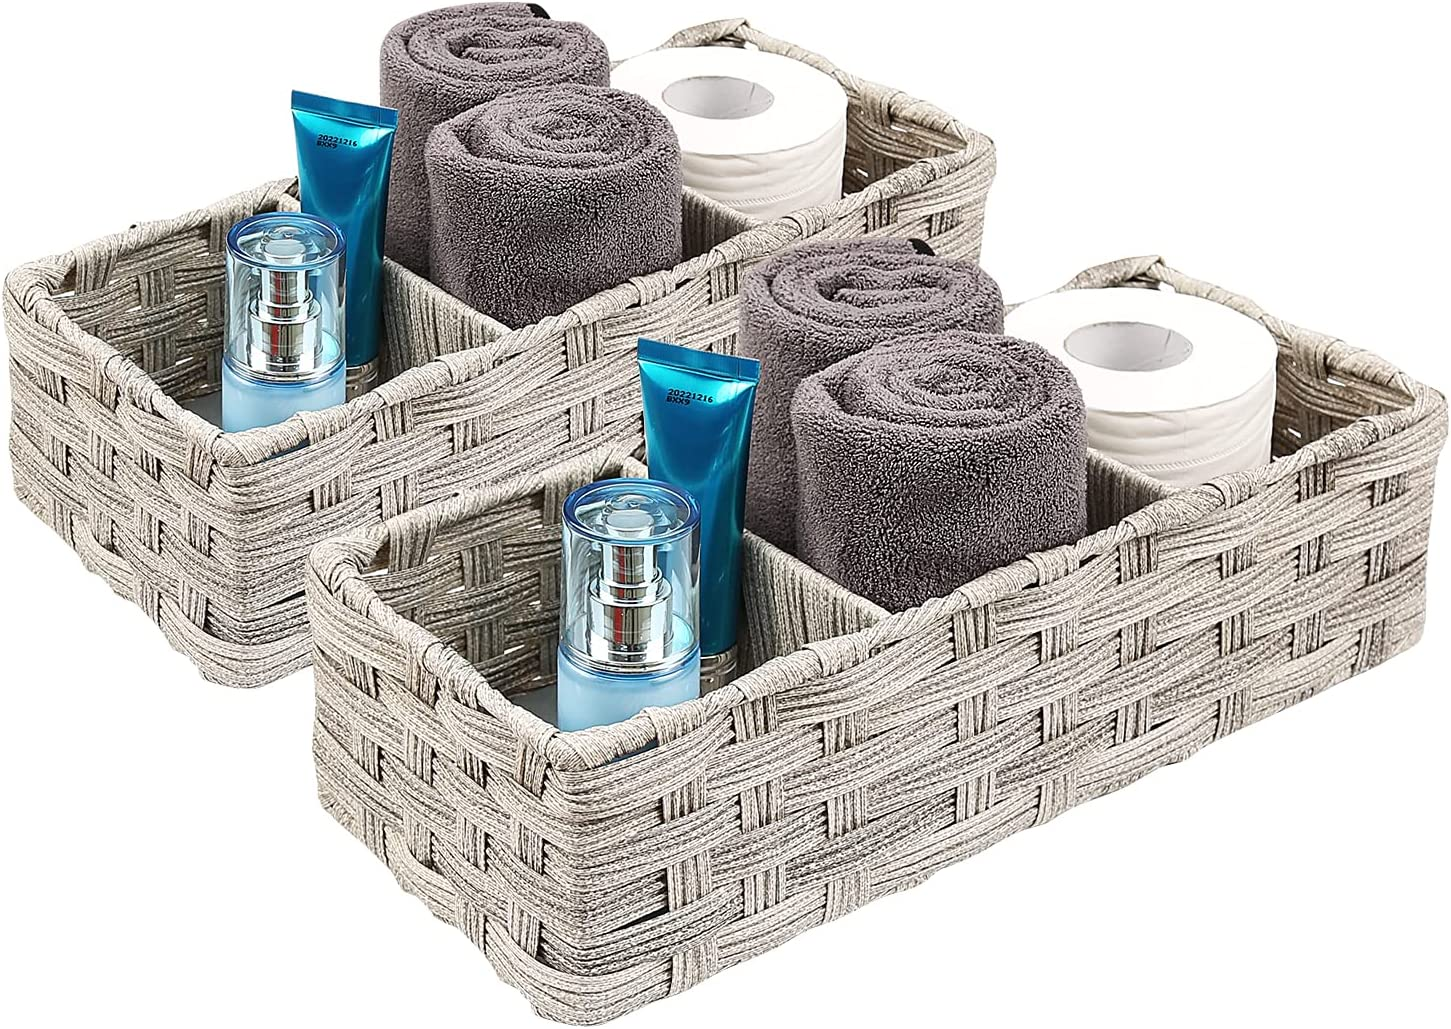 Safety and trust Toilet Challenge the lowest price of Japan Paper Basket 3 Section Storage Compartments